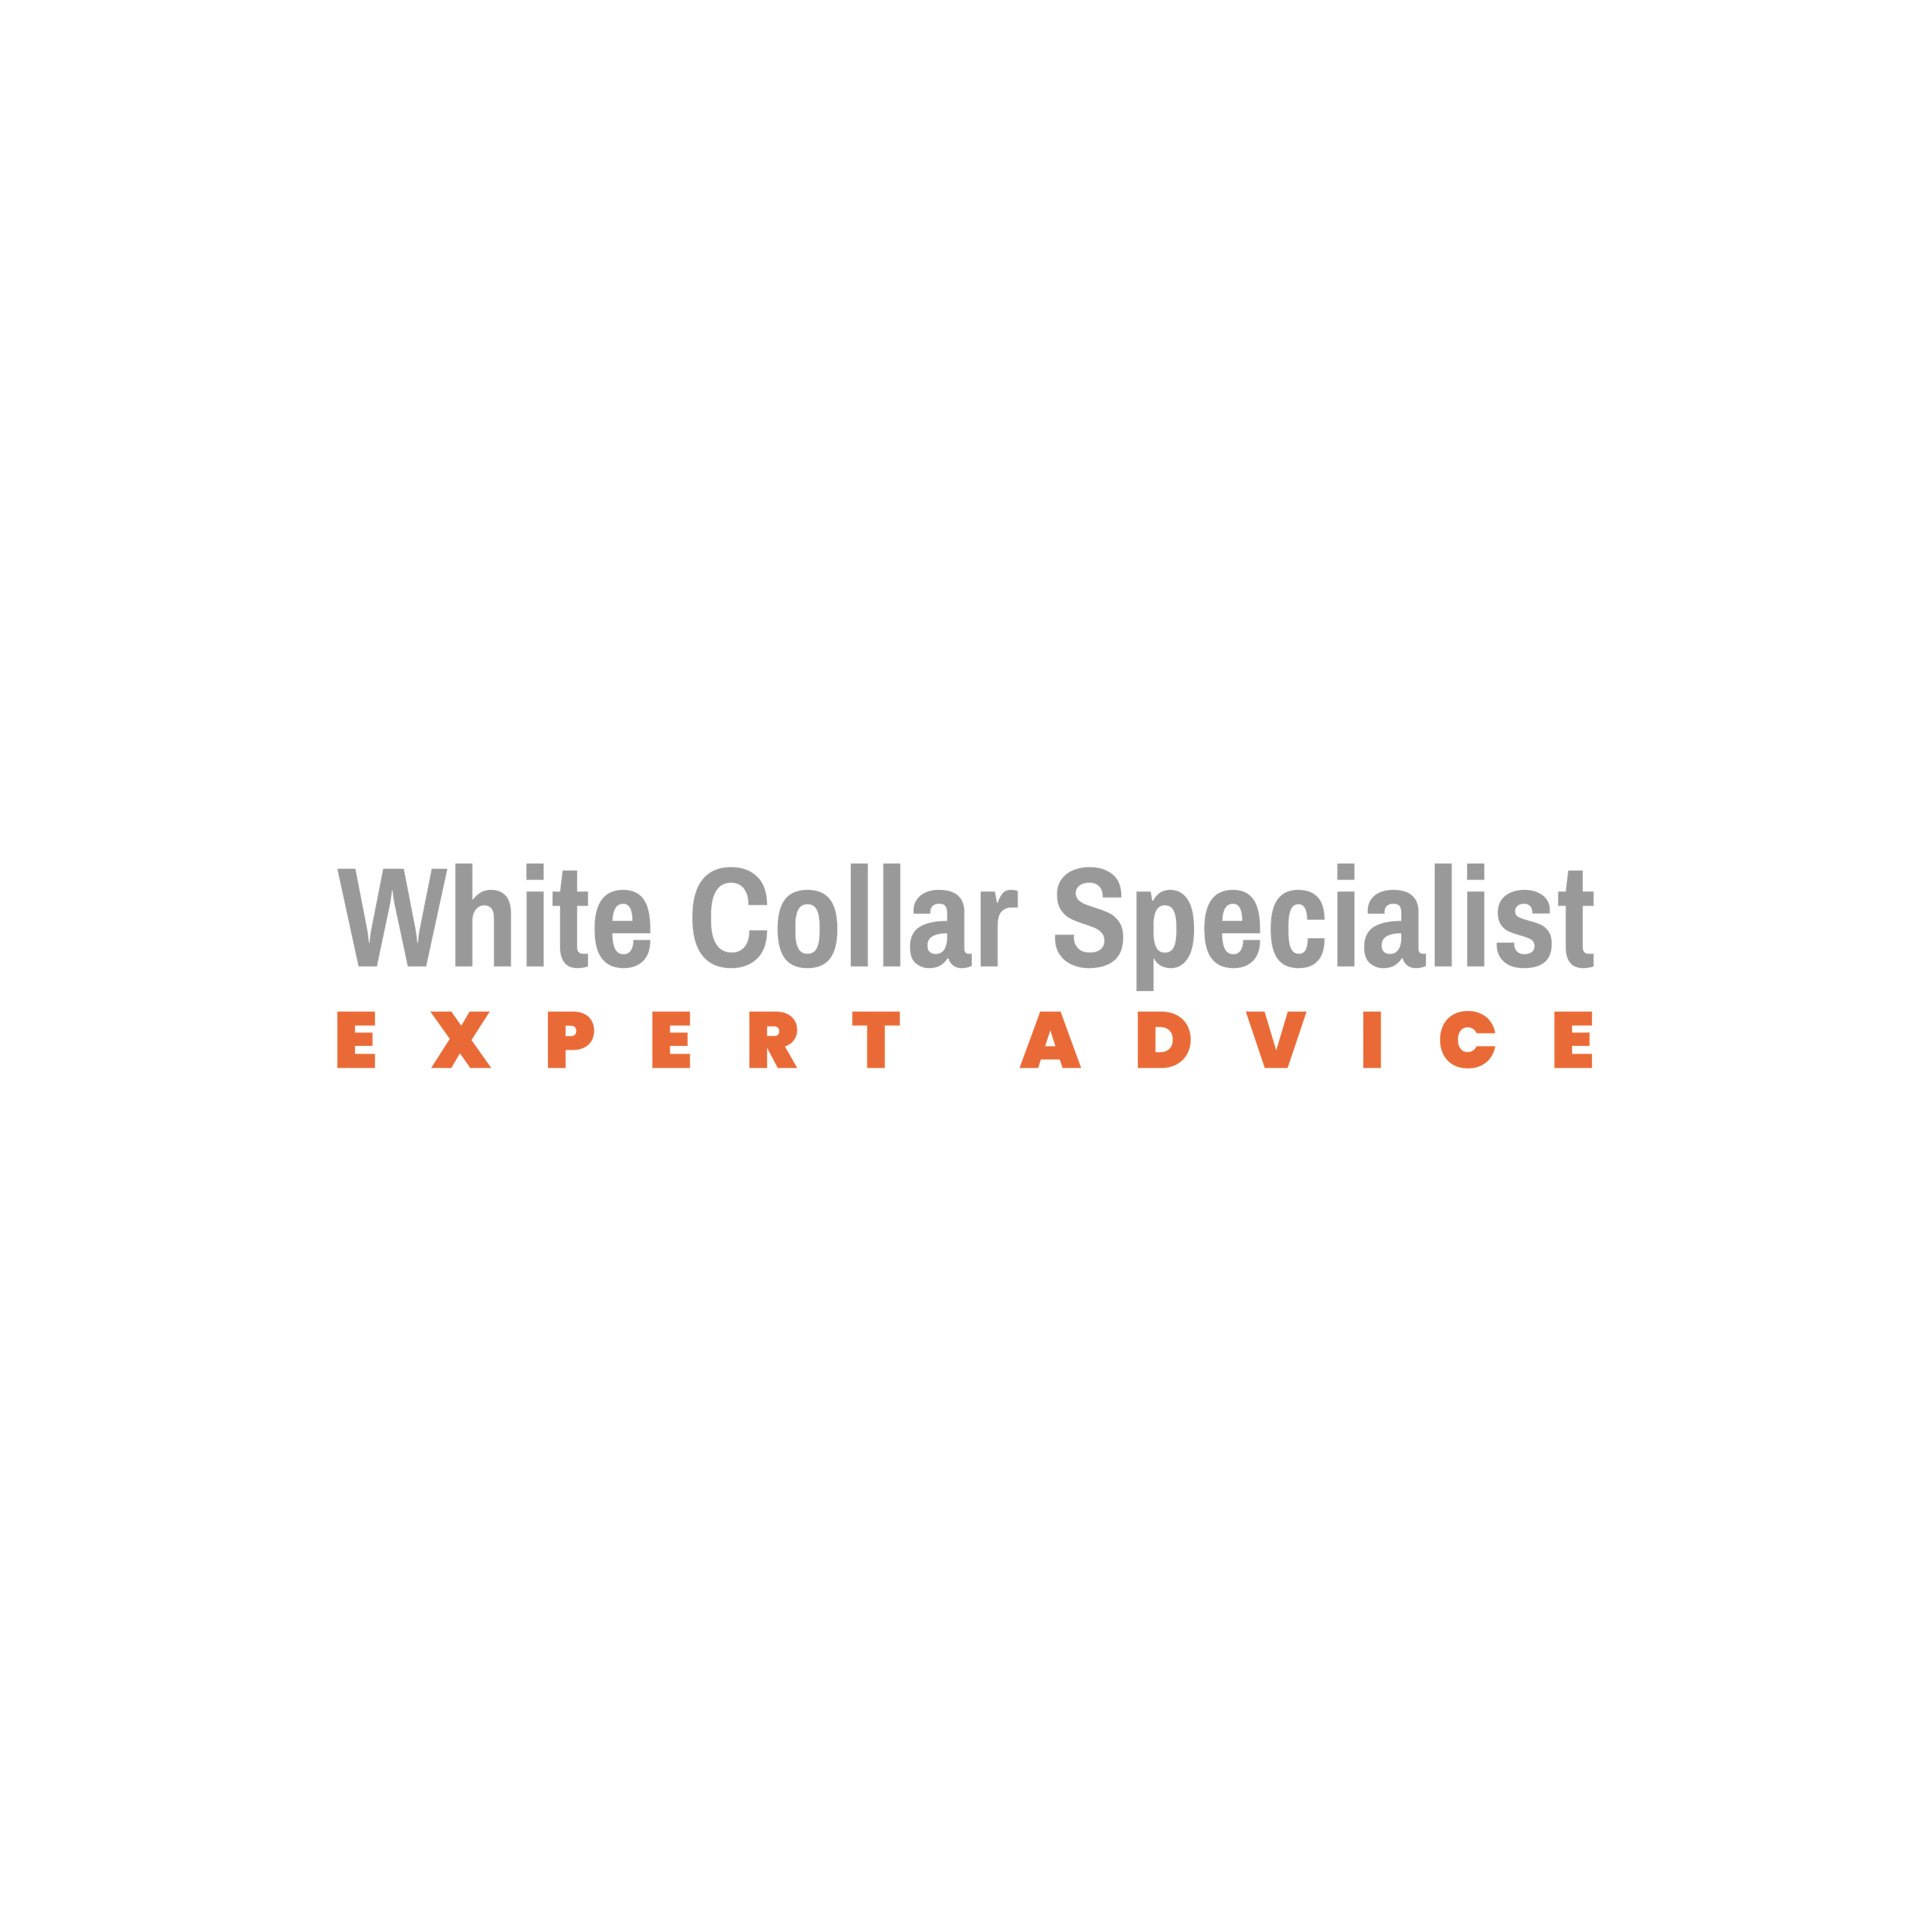 white collar specialist